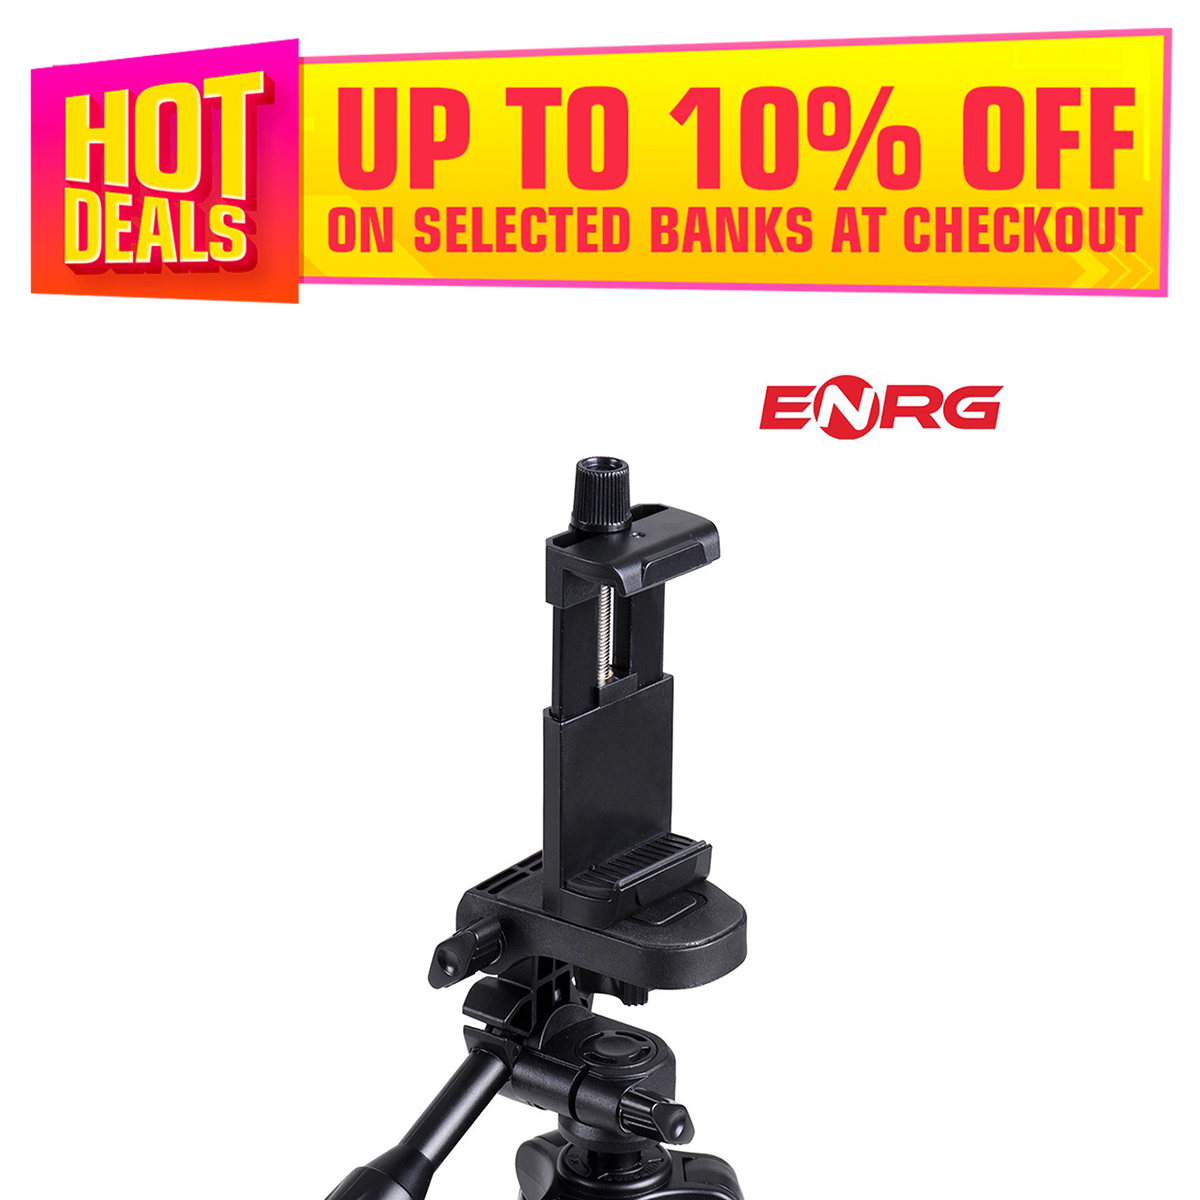 ENRG Multi function Clip Mobile Phone Holder With Tripod Mount Adapter With Adjustable Screw Tripod Holder For Phone - High Quality